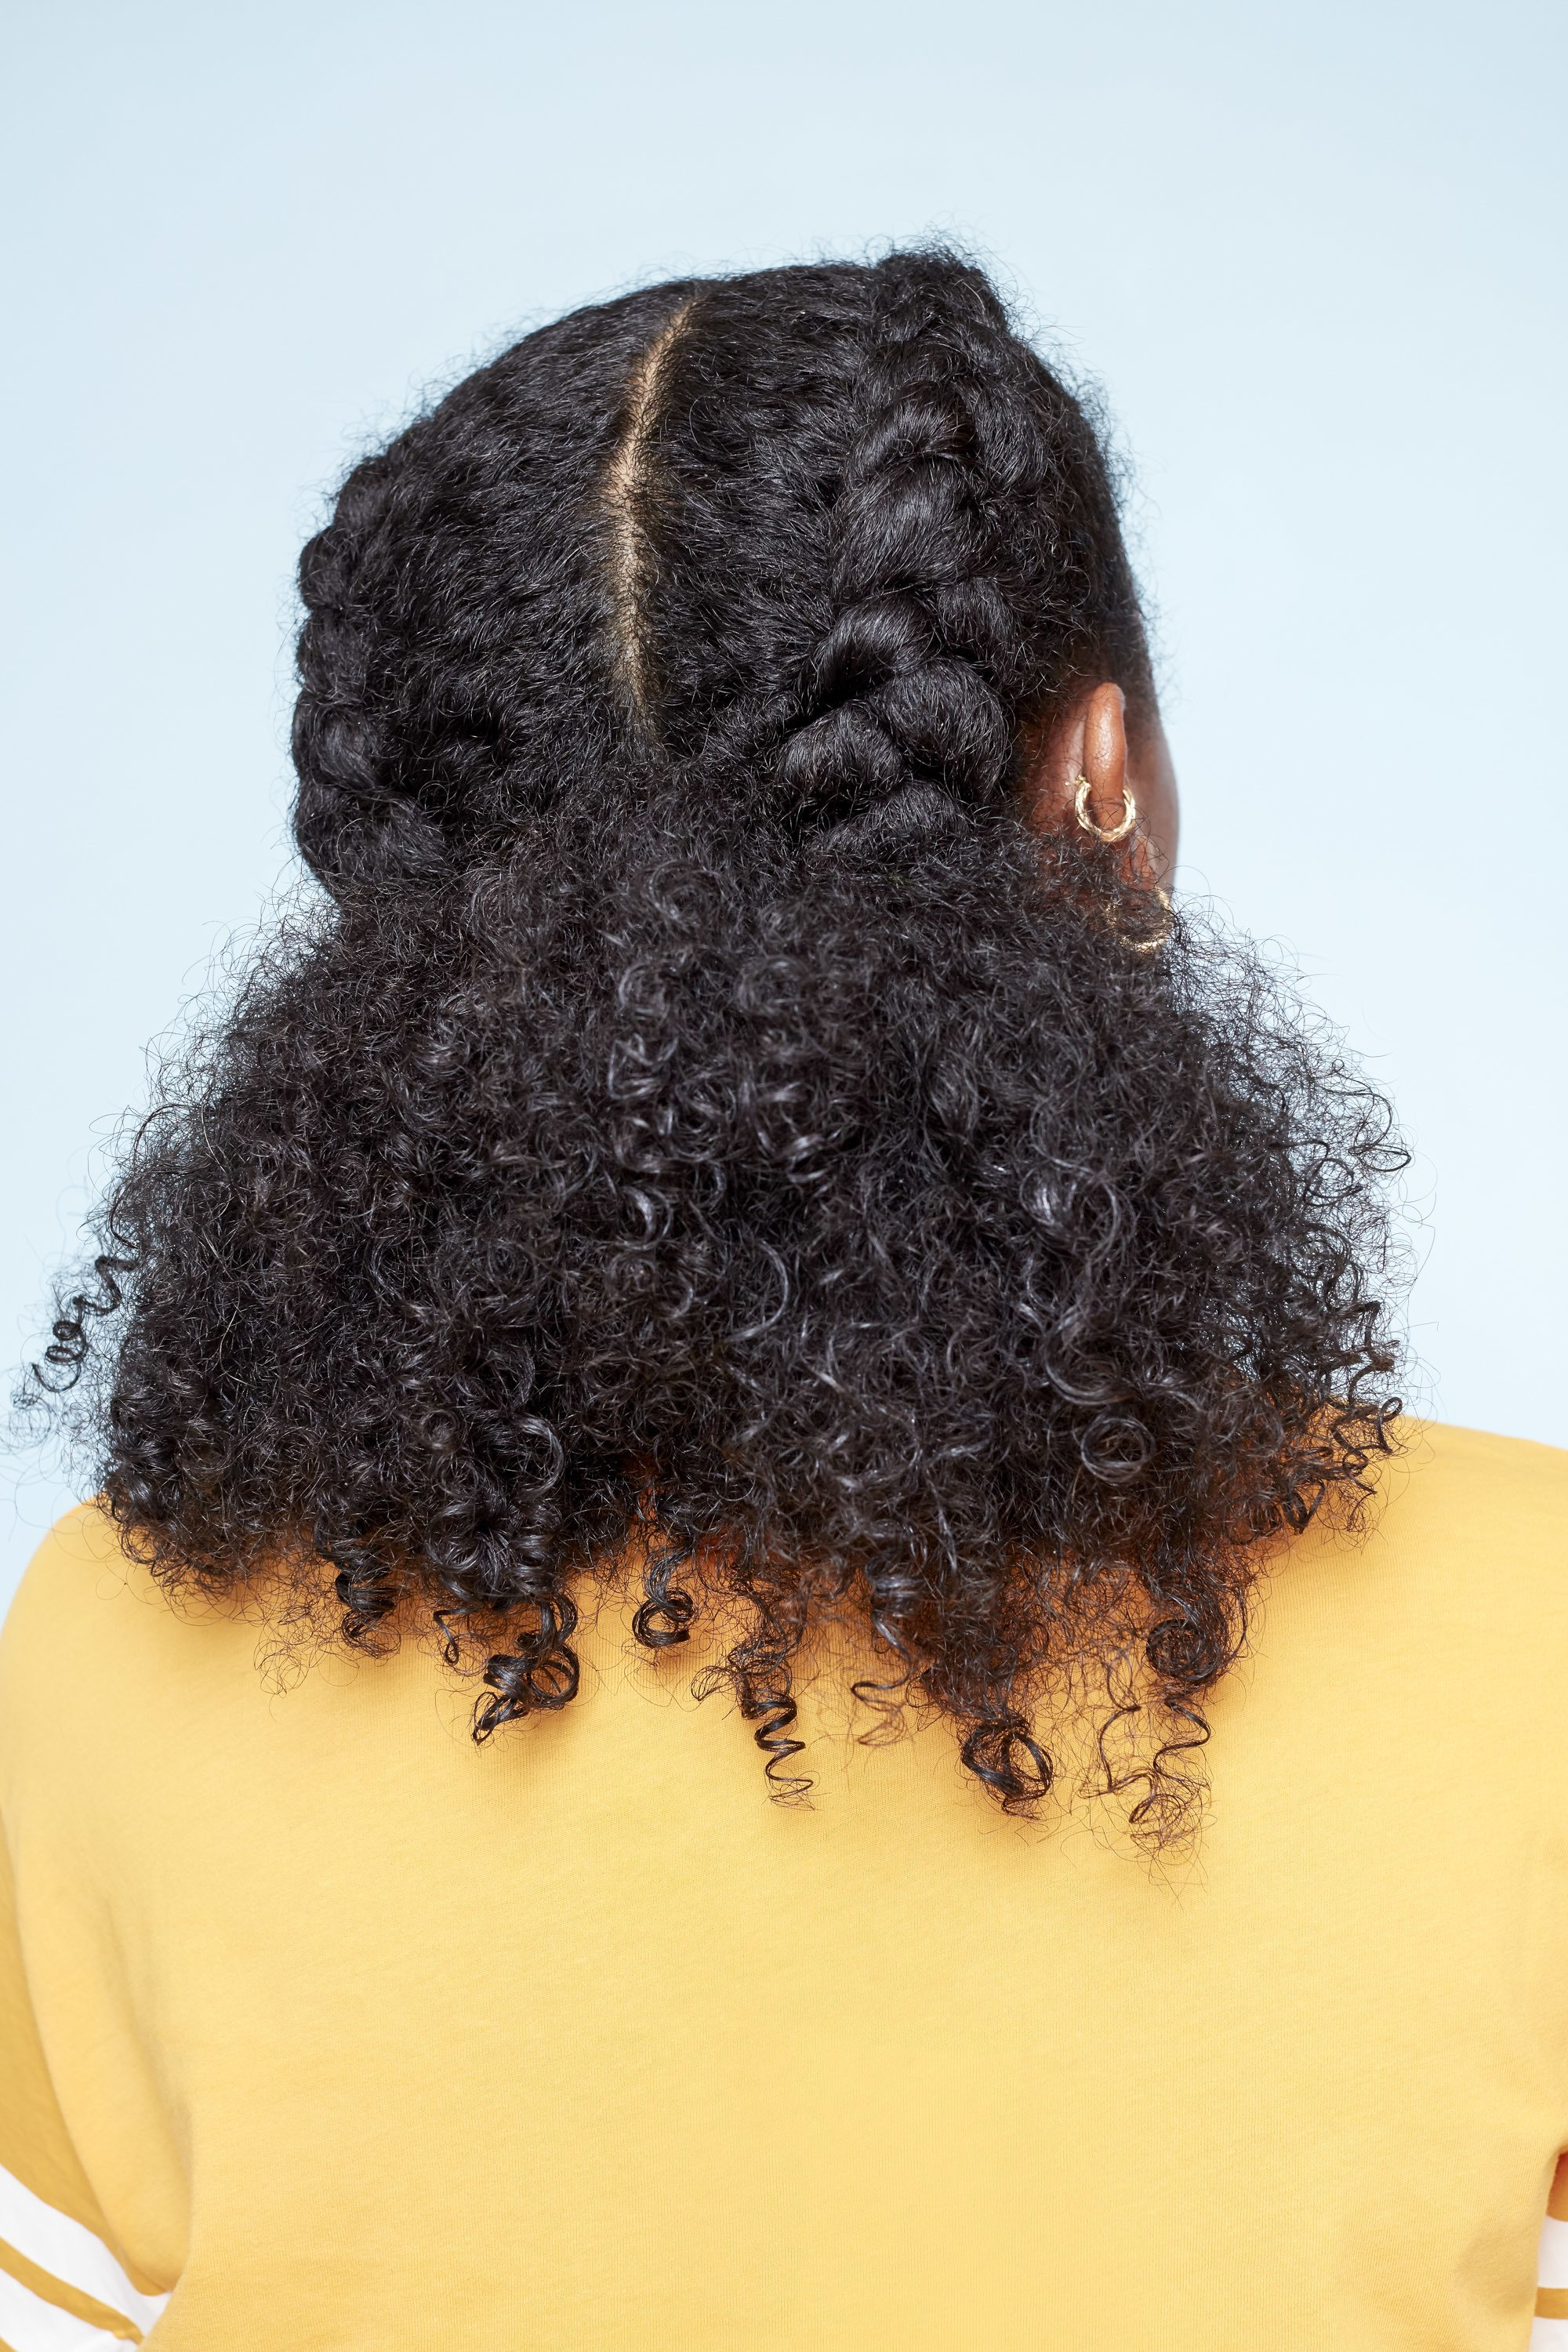 Easy natural hairstyles: Back shot of a model with dark brown shoulder-length natural hair styled into a Dutch braids ponytail, wearing a yellow top and posing in a studio setting.